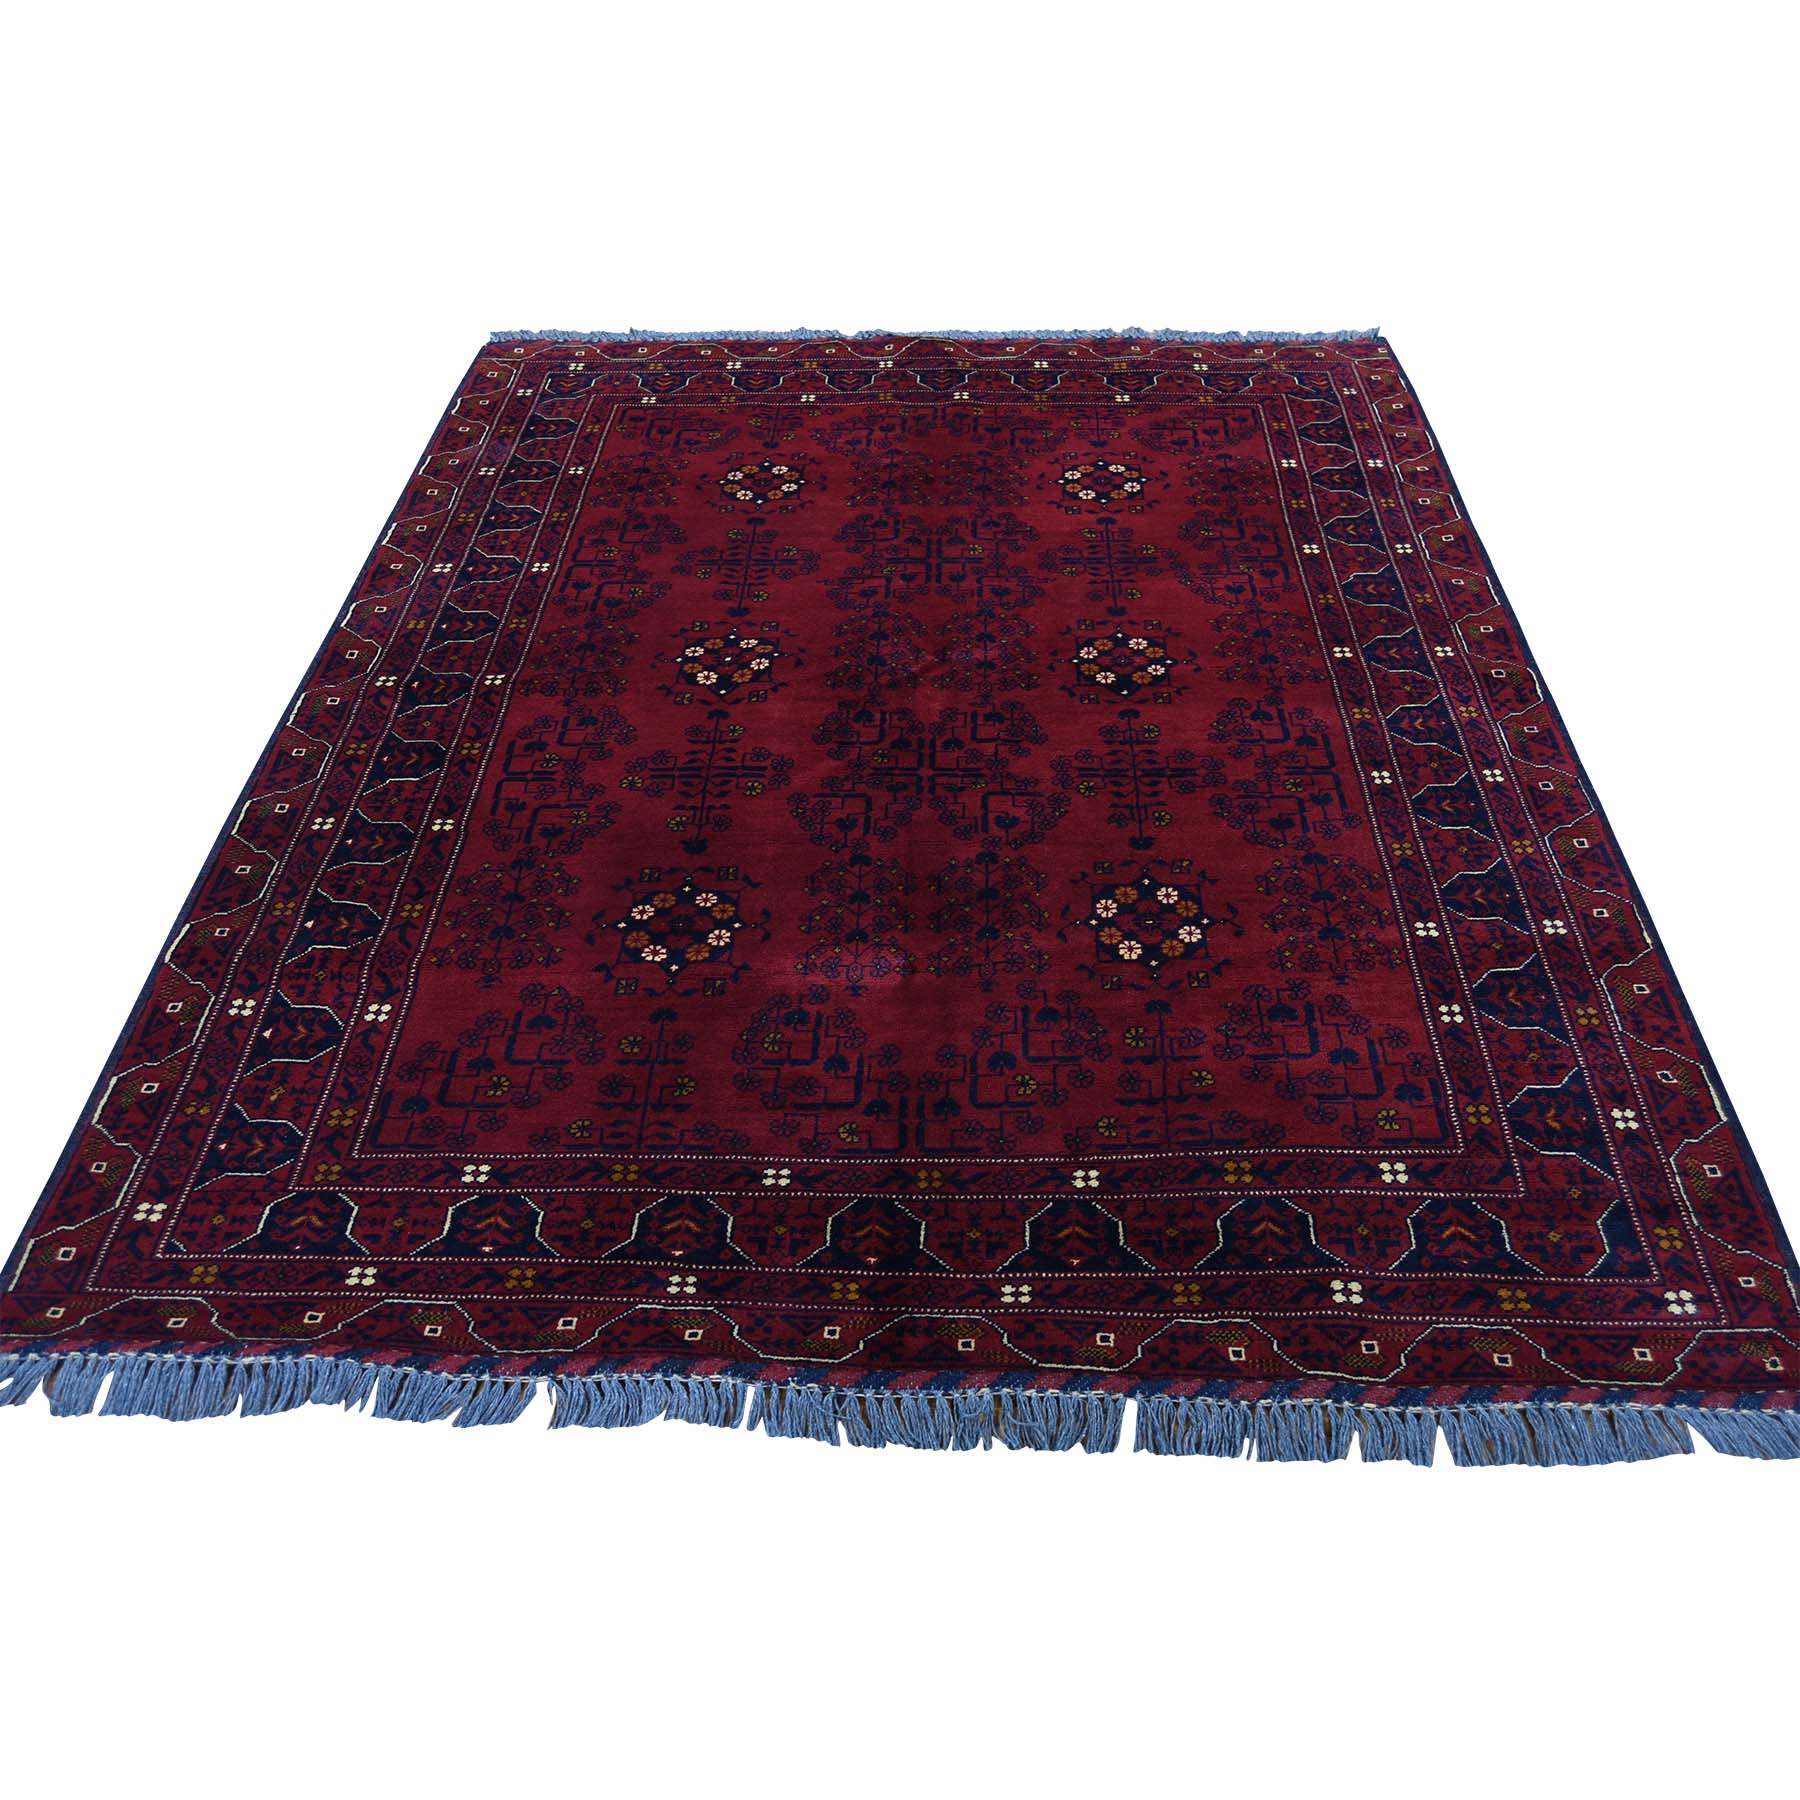 "5'X6'6"" Pure Wool Red Afghan Qunduz Hand-Knotted Oriental Rug moadb6aa"